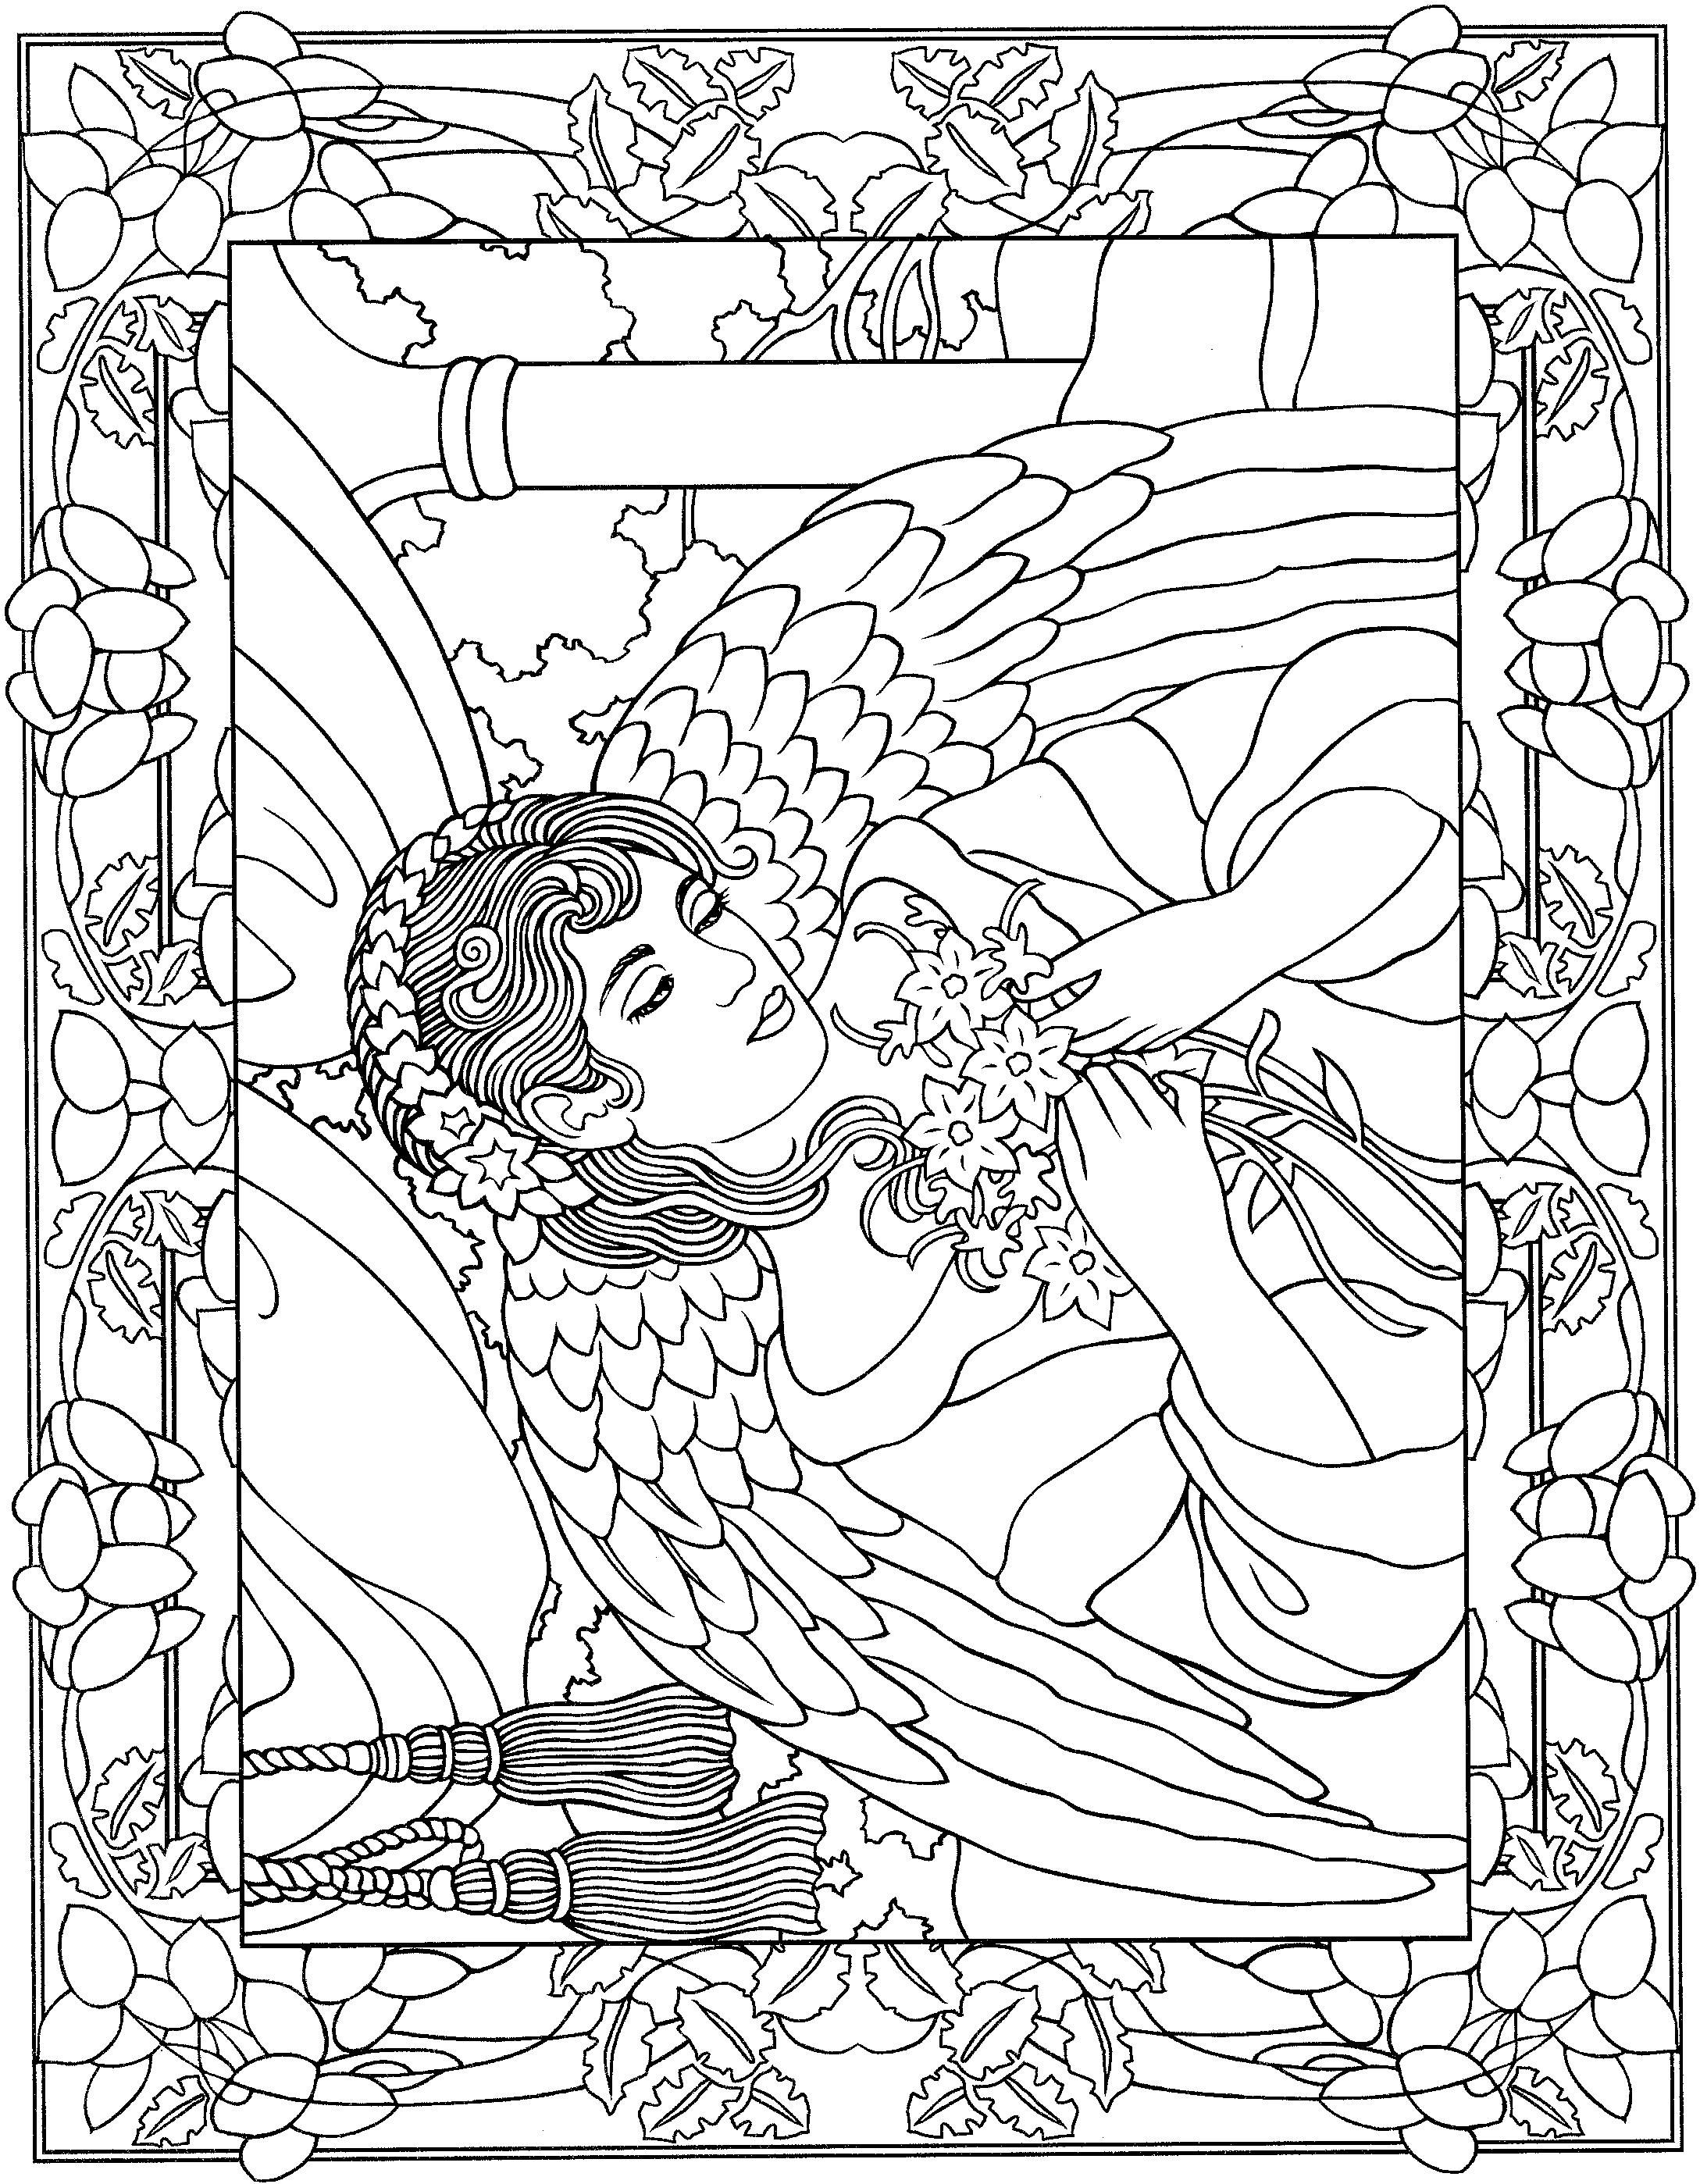 Adult Fantasy Angel Coloring Page